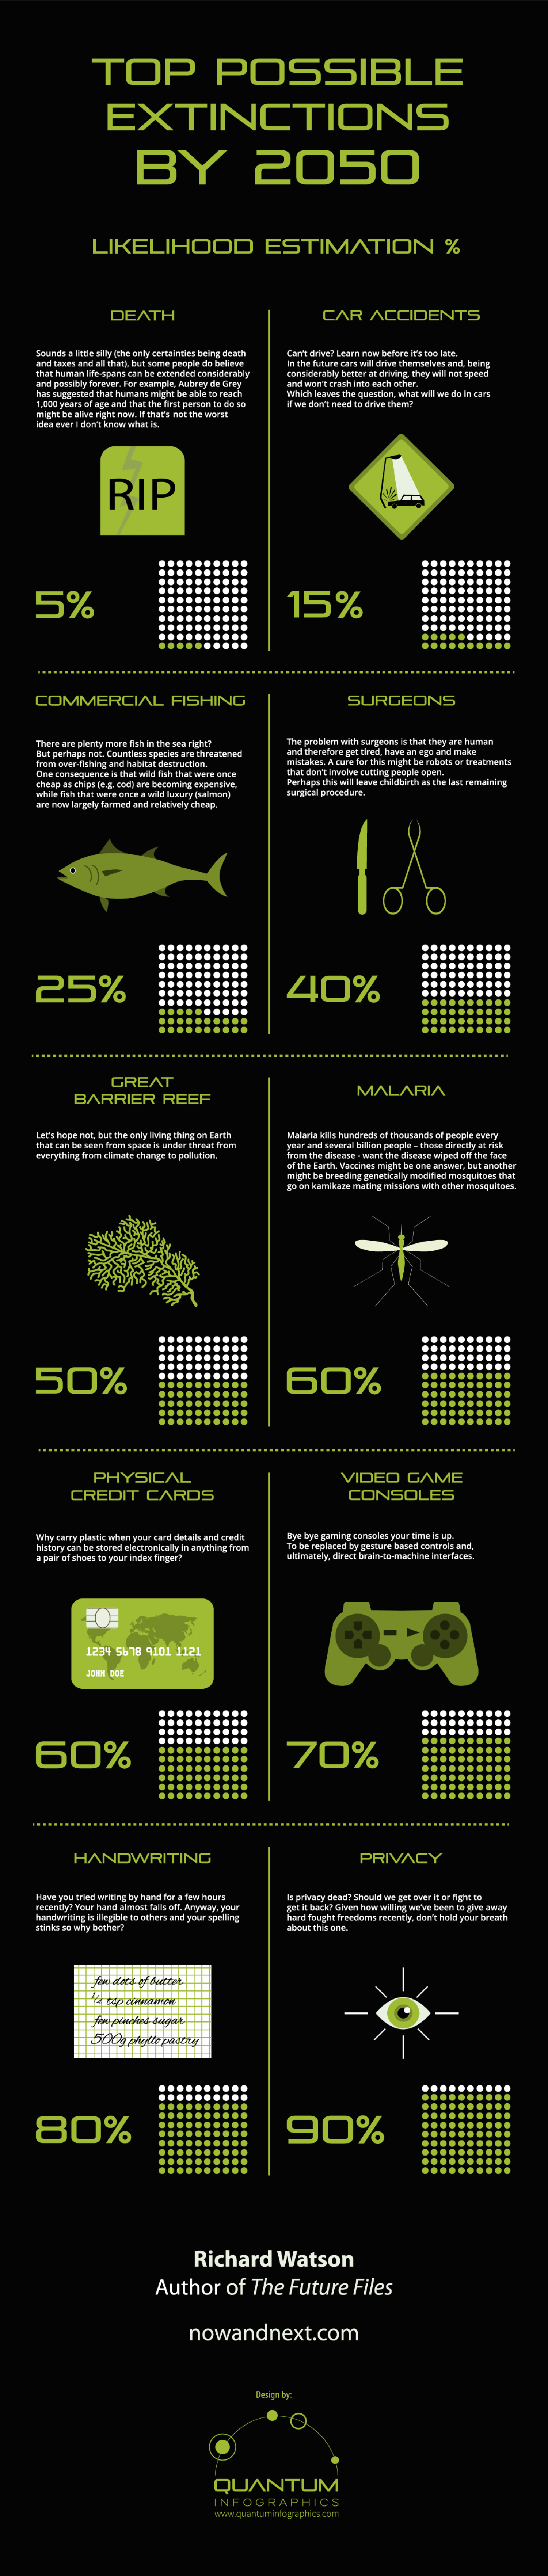 Top Possible Extinctions by 2050 Infographic